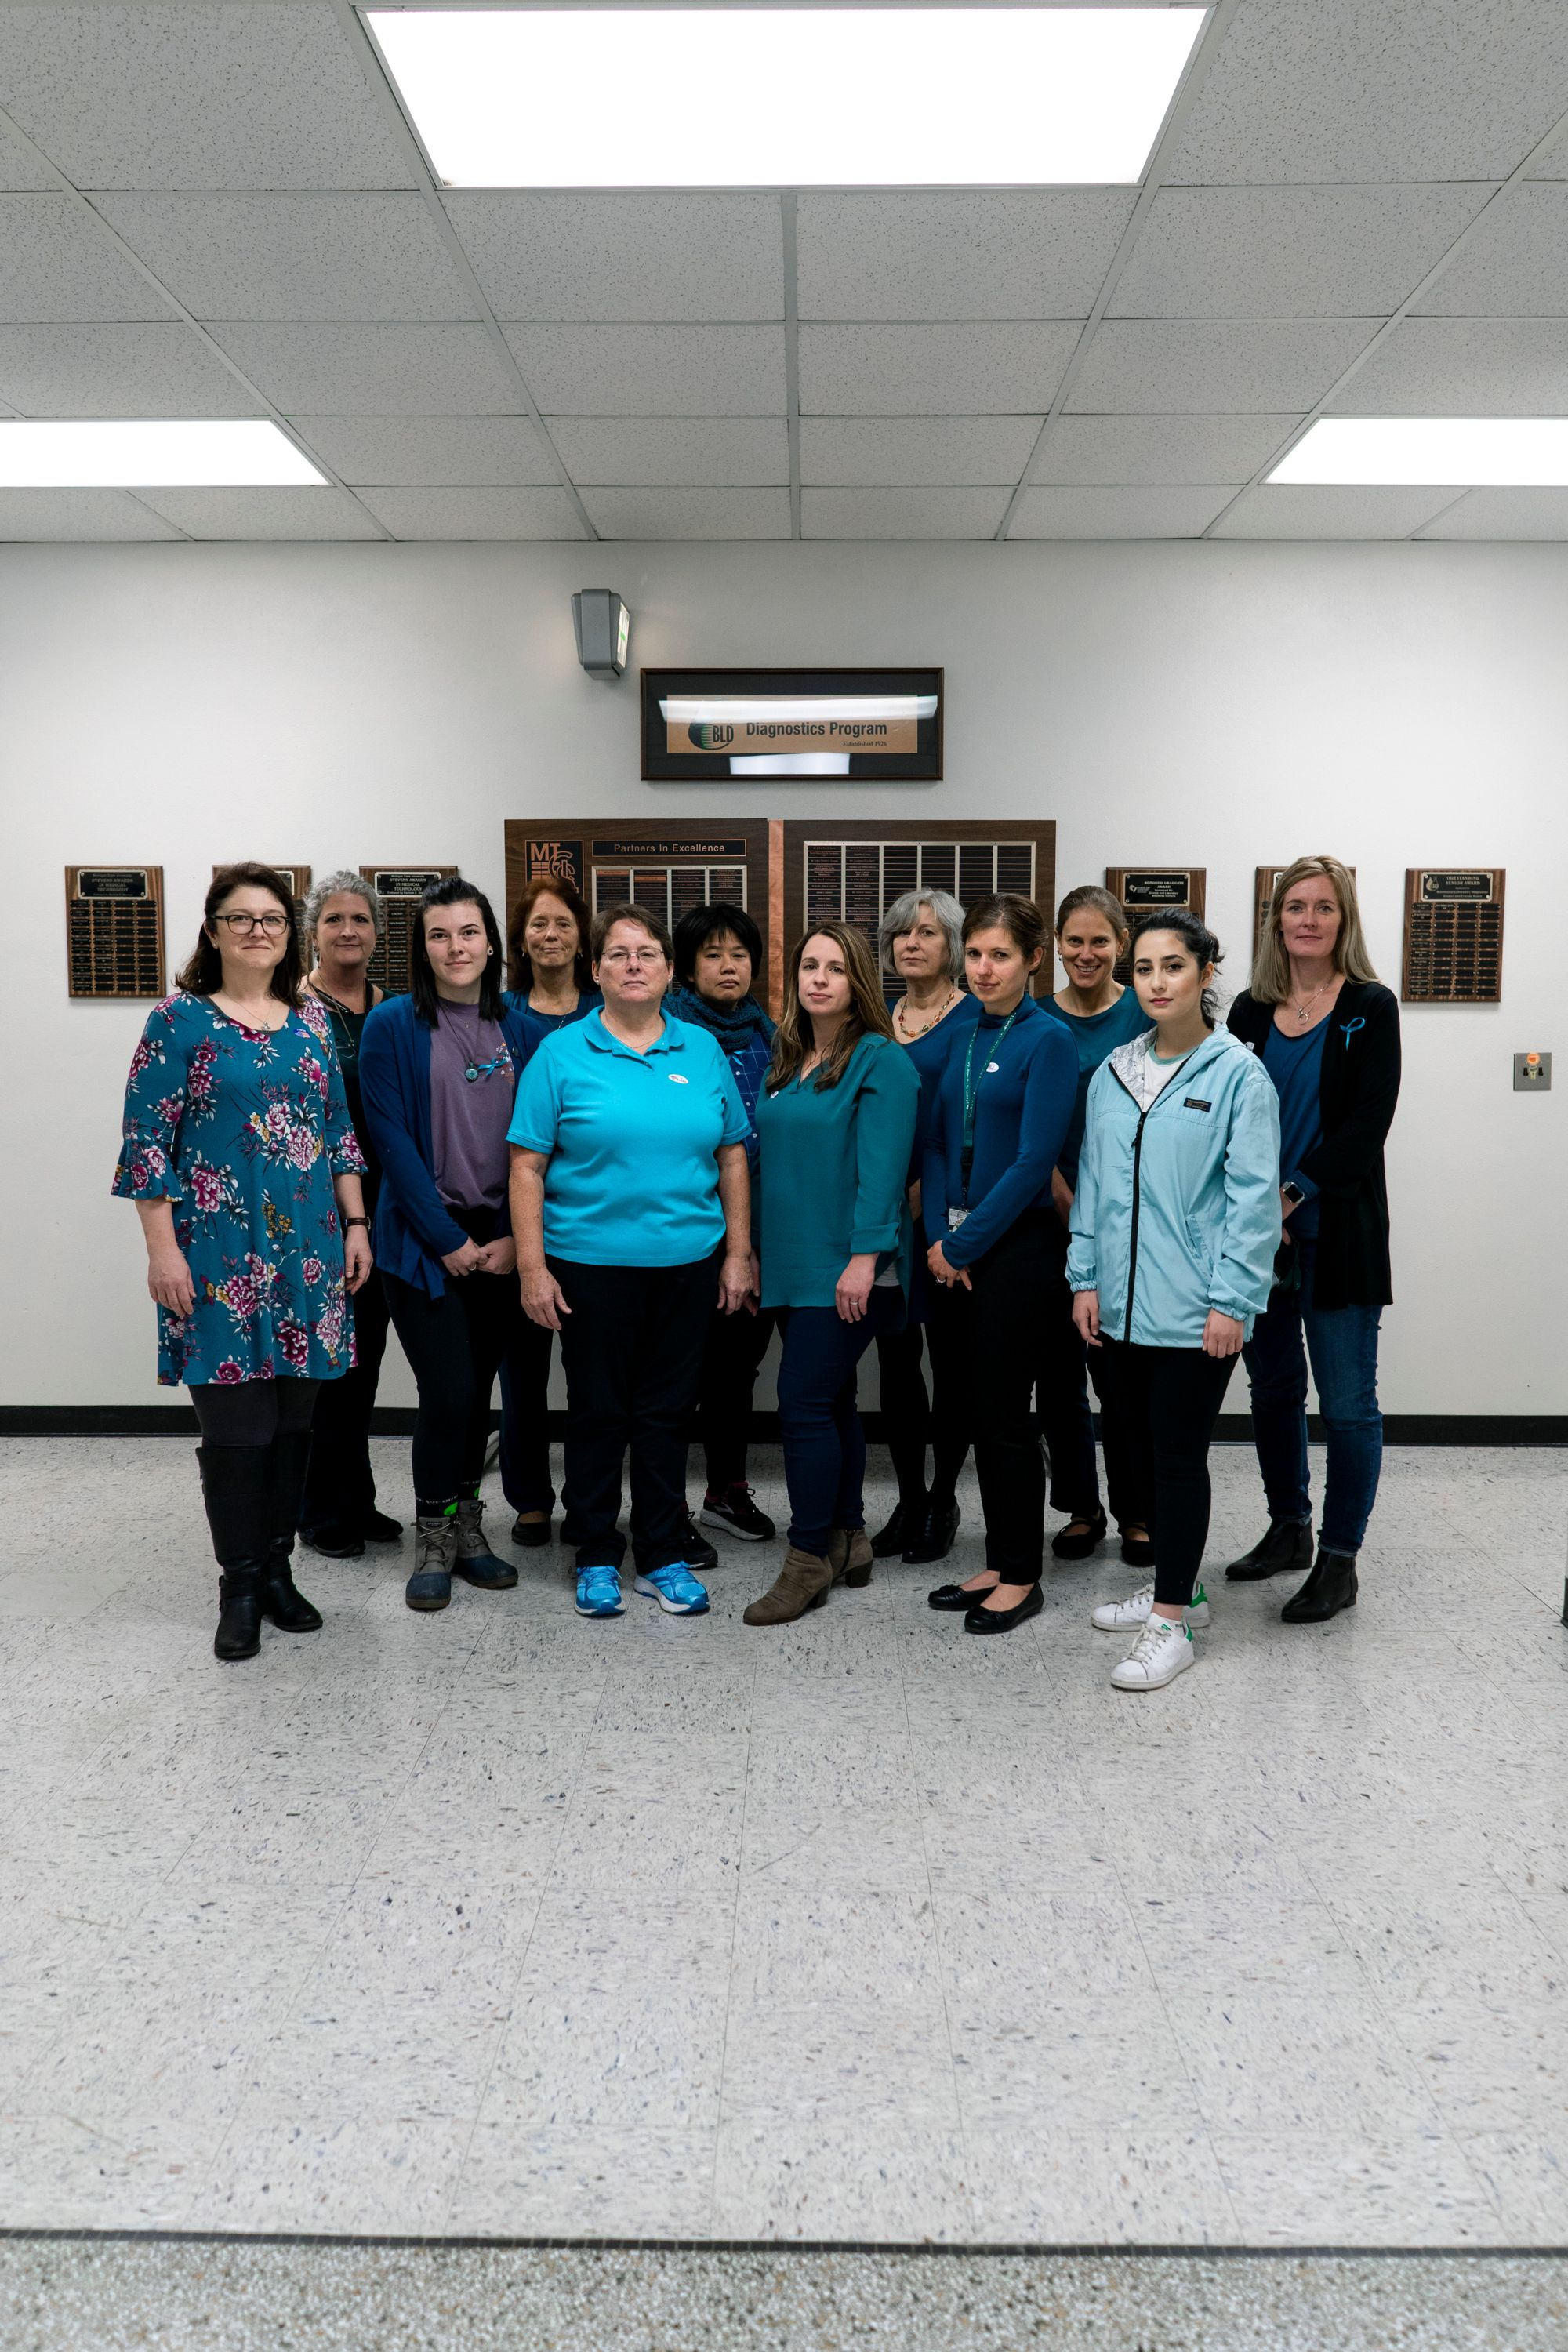 A photo of BLD Faculty Staff and Students wearing teal